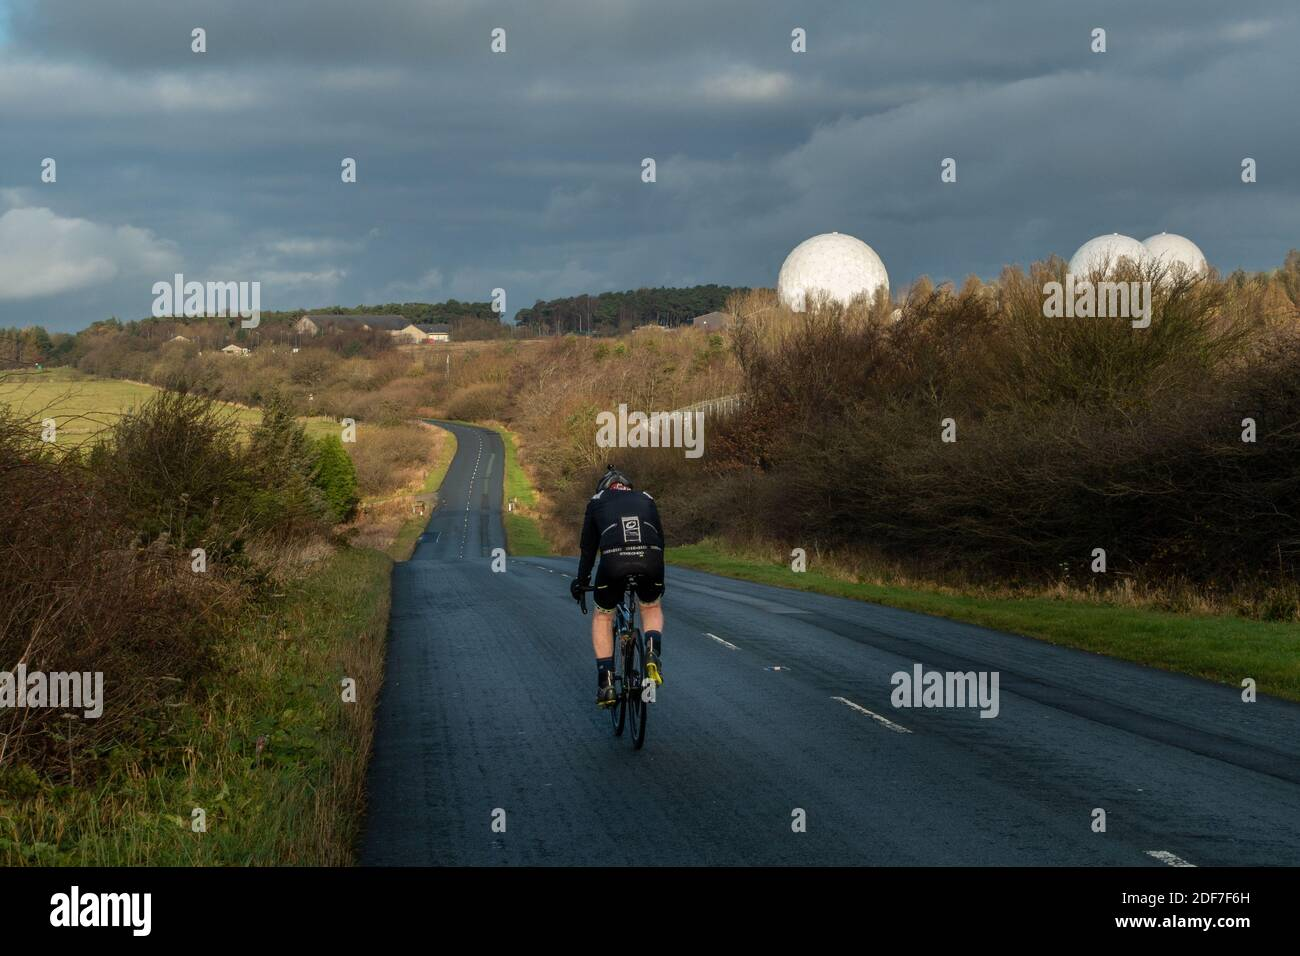 Cyclist cycling the B6461 past RAF Menwith Hill with white circular radomes of satellite ground station visible, North Yorkshire, England, UK Stock Photo